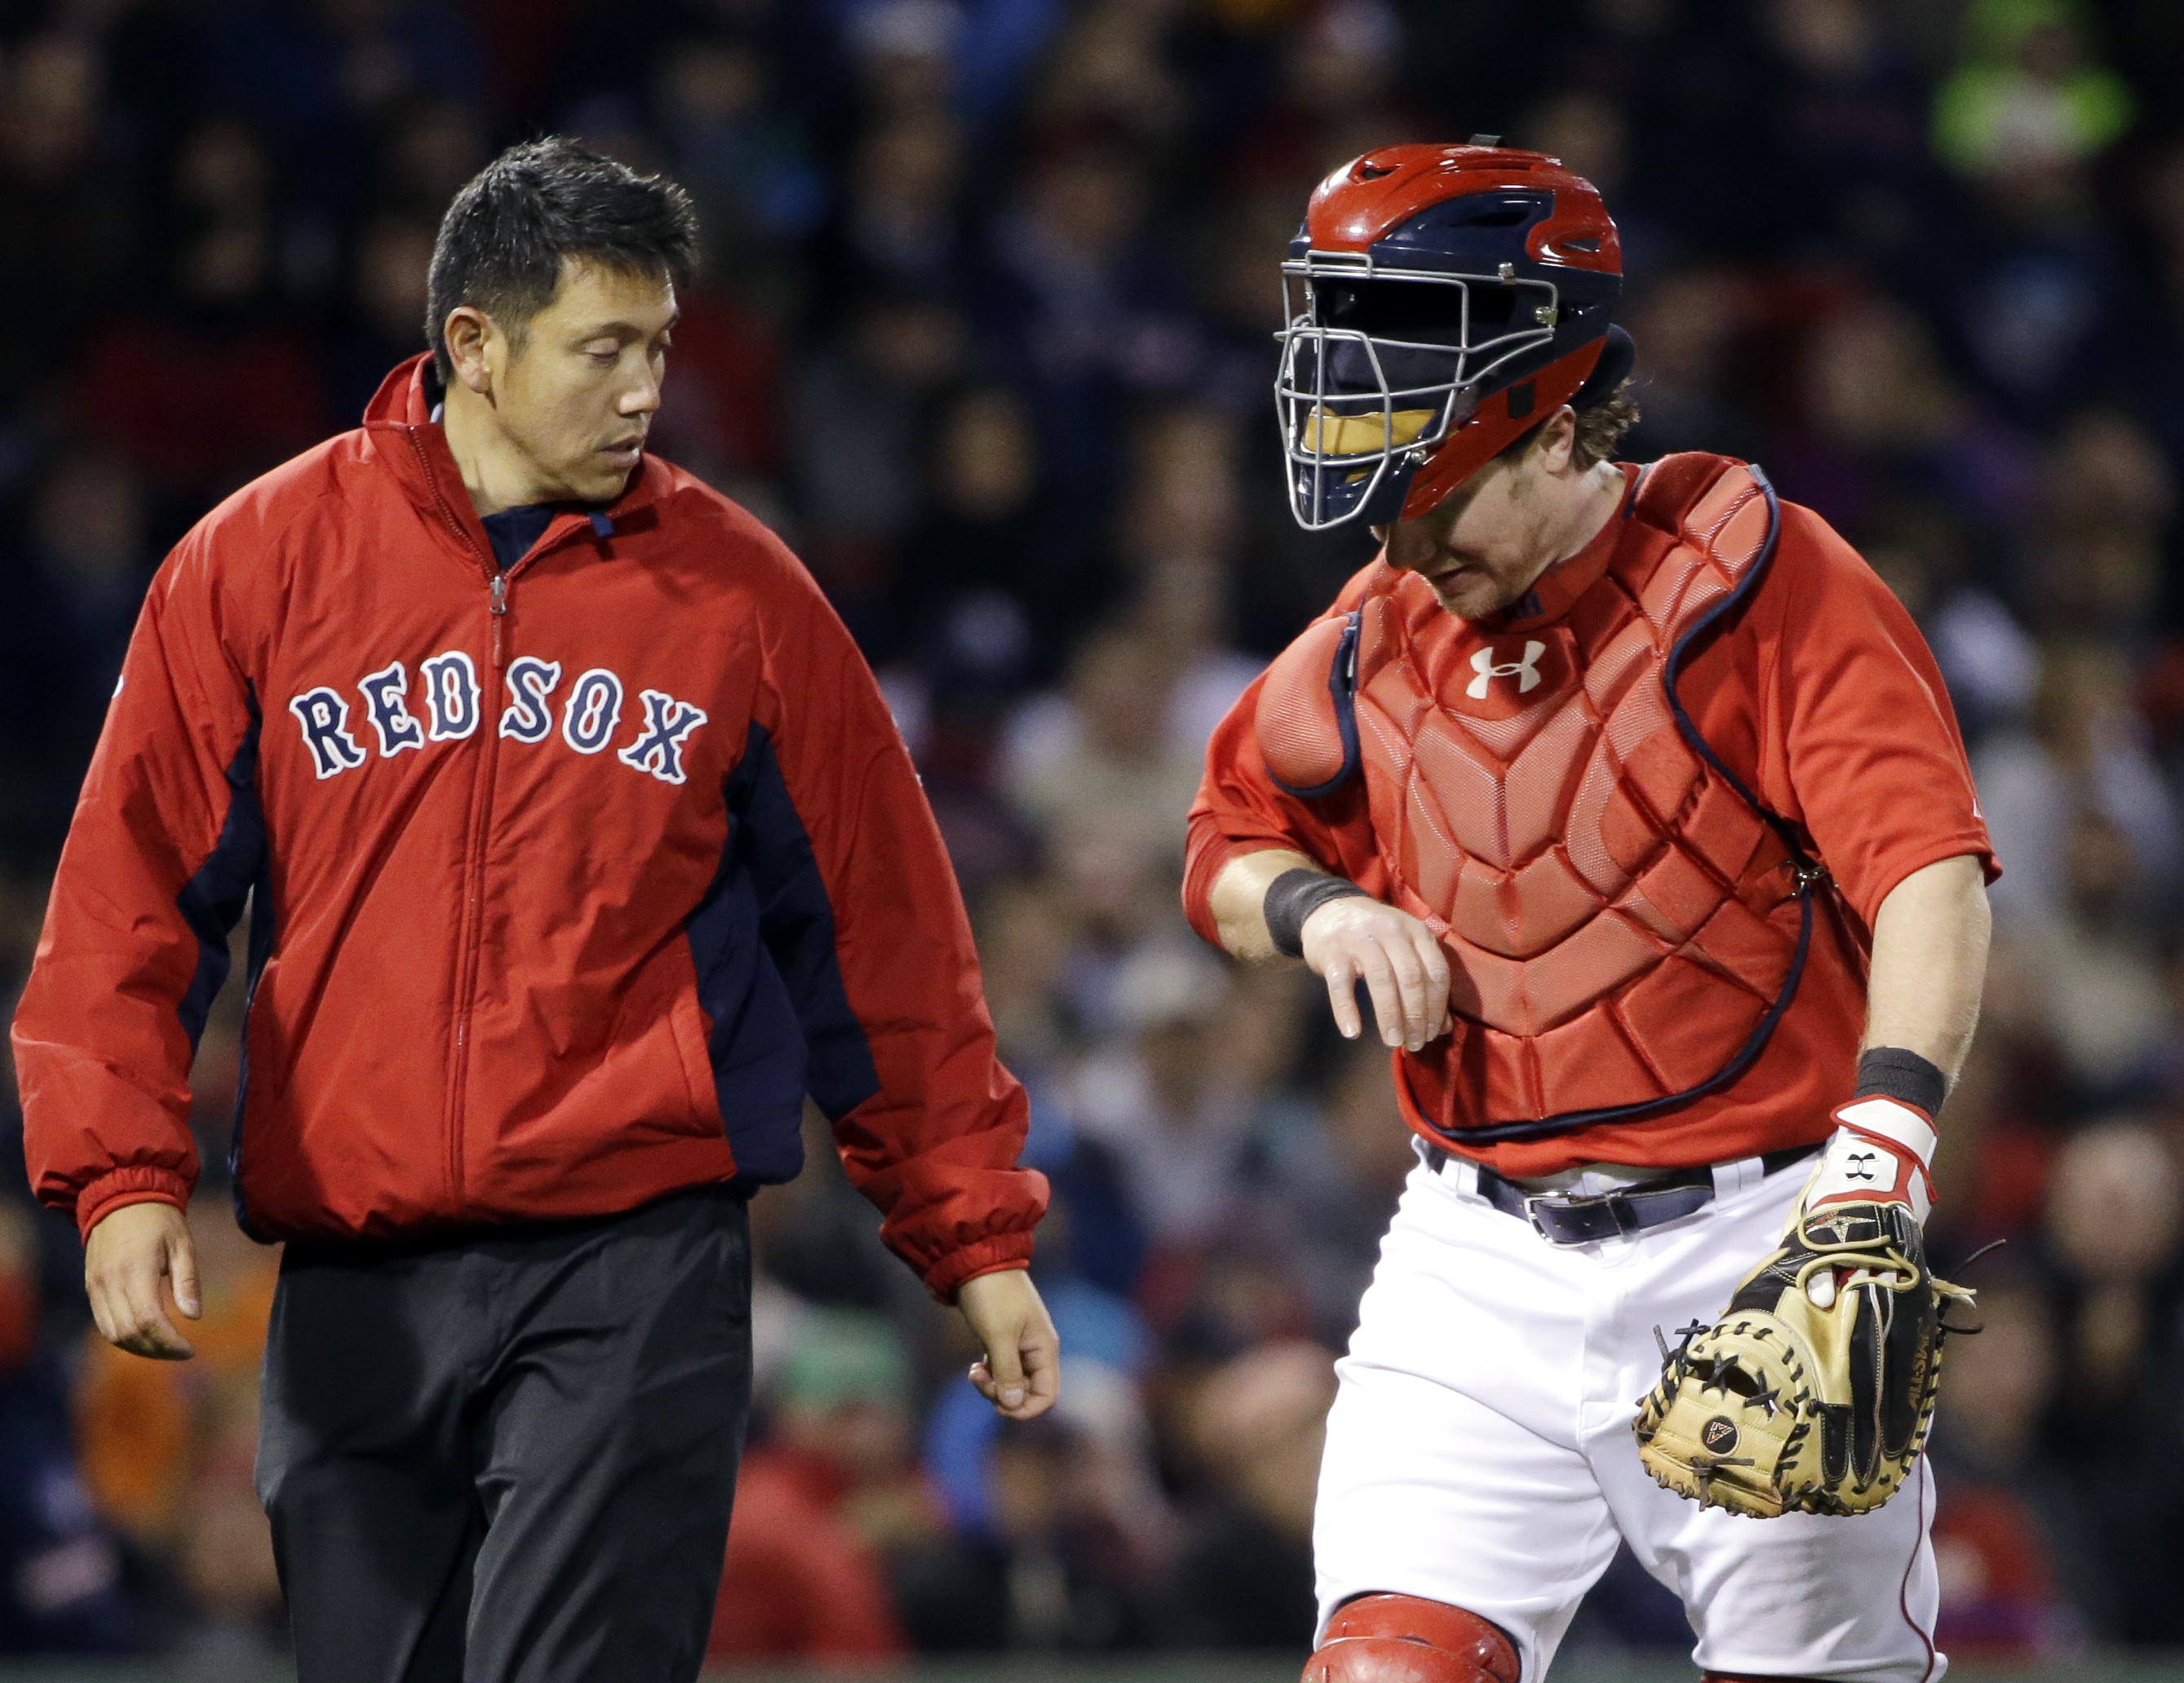 Boston Red Sox catcher Ryan Hanigan looks at his hand as he leaves in the seventh inning of a baseball game at Fenway Park in Boston, Friday, May 1, 2015, after being hit by a pitch from reliever Tommy Layne which first hit New York Yankees batter Mark Te